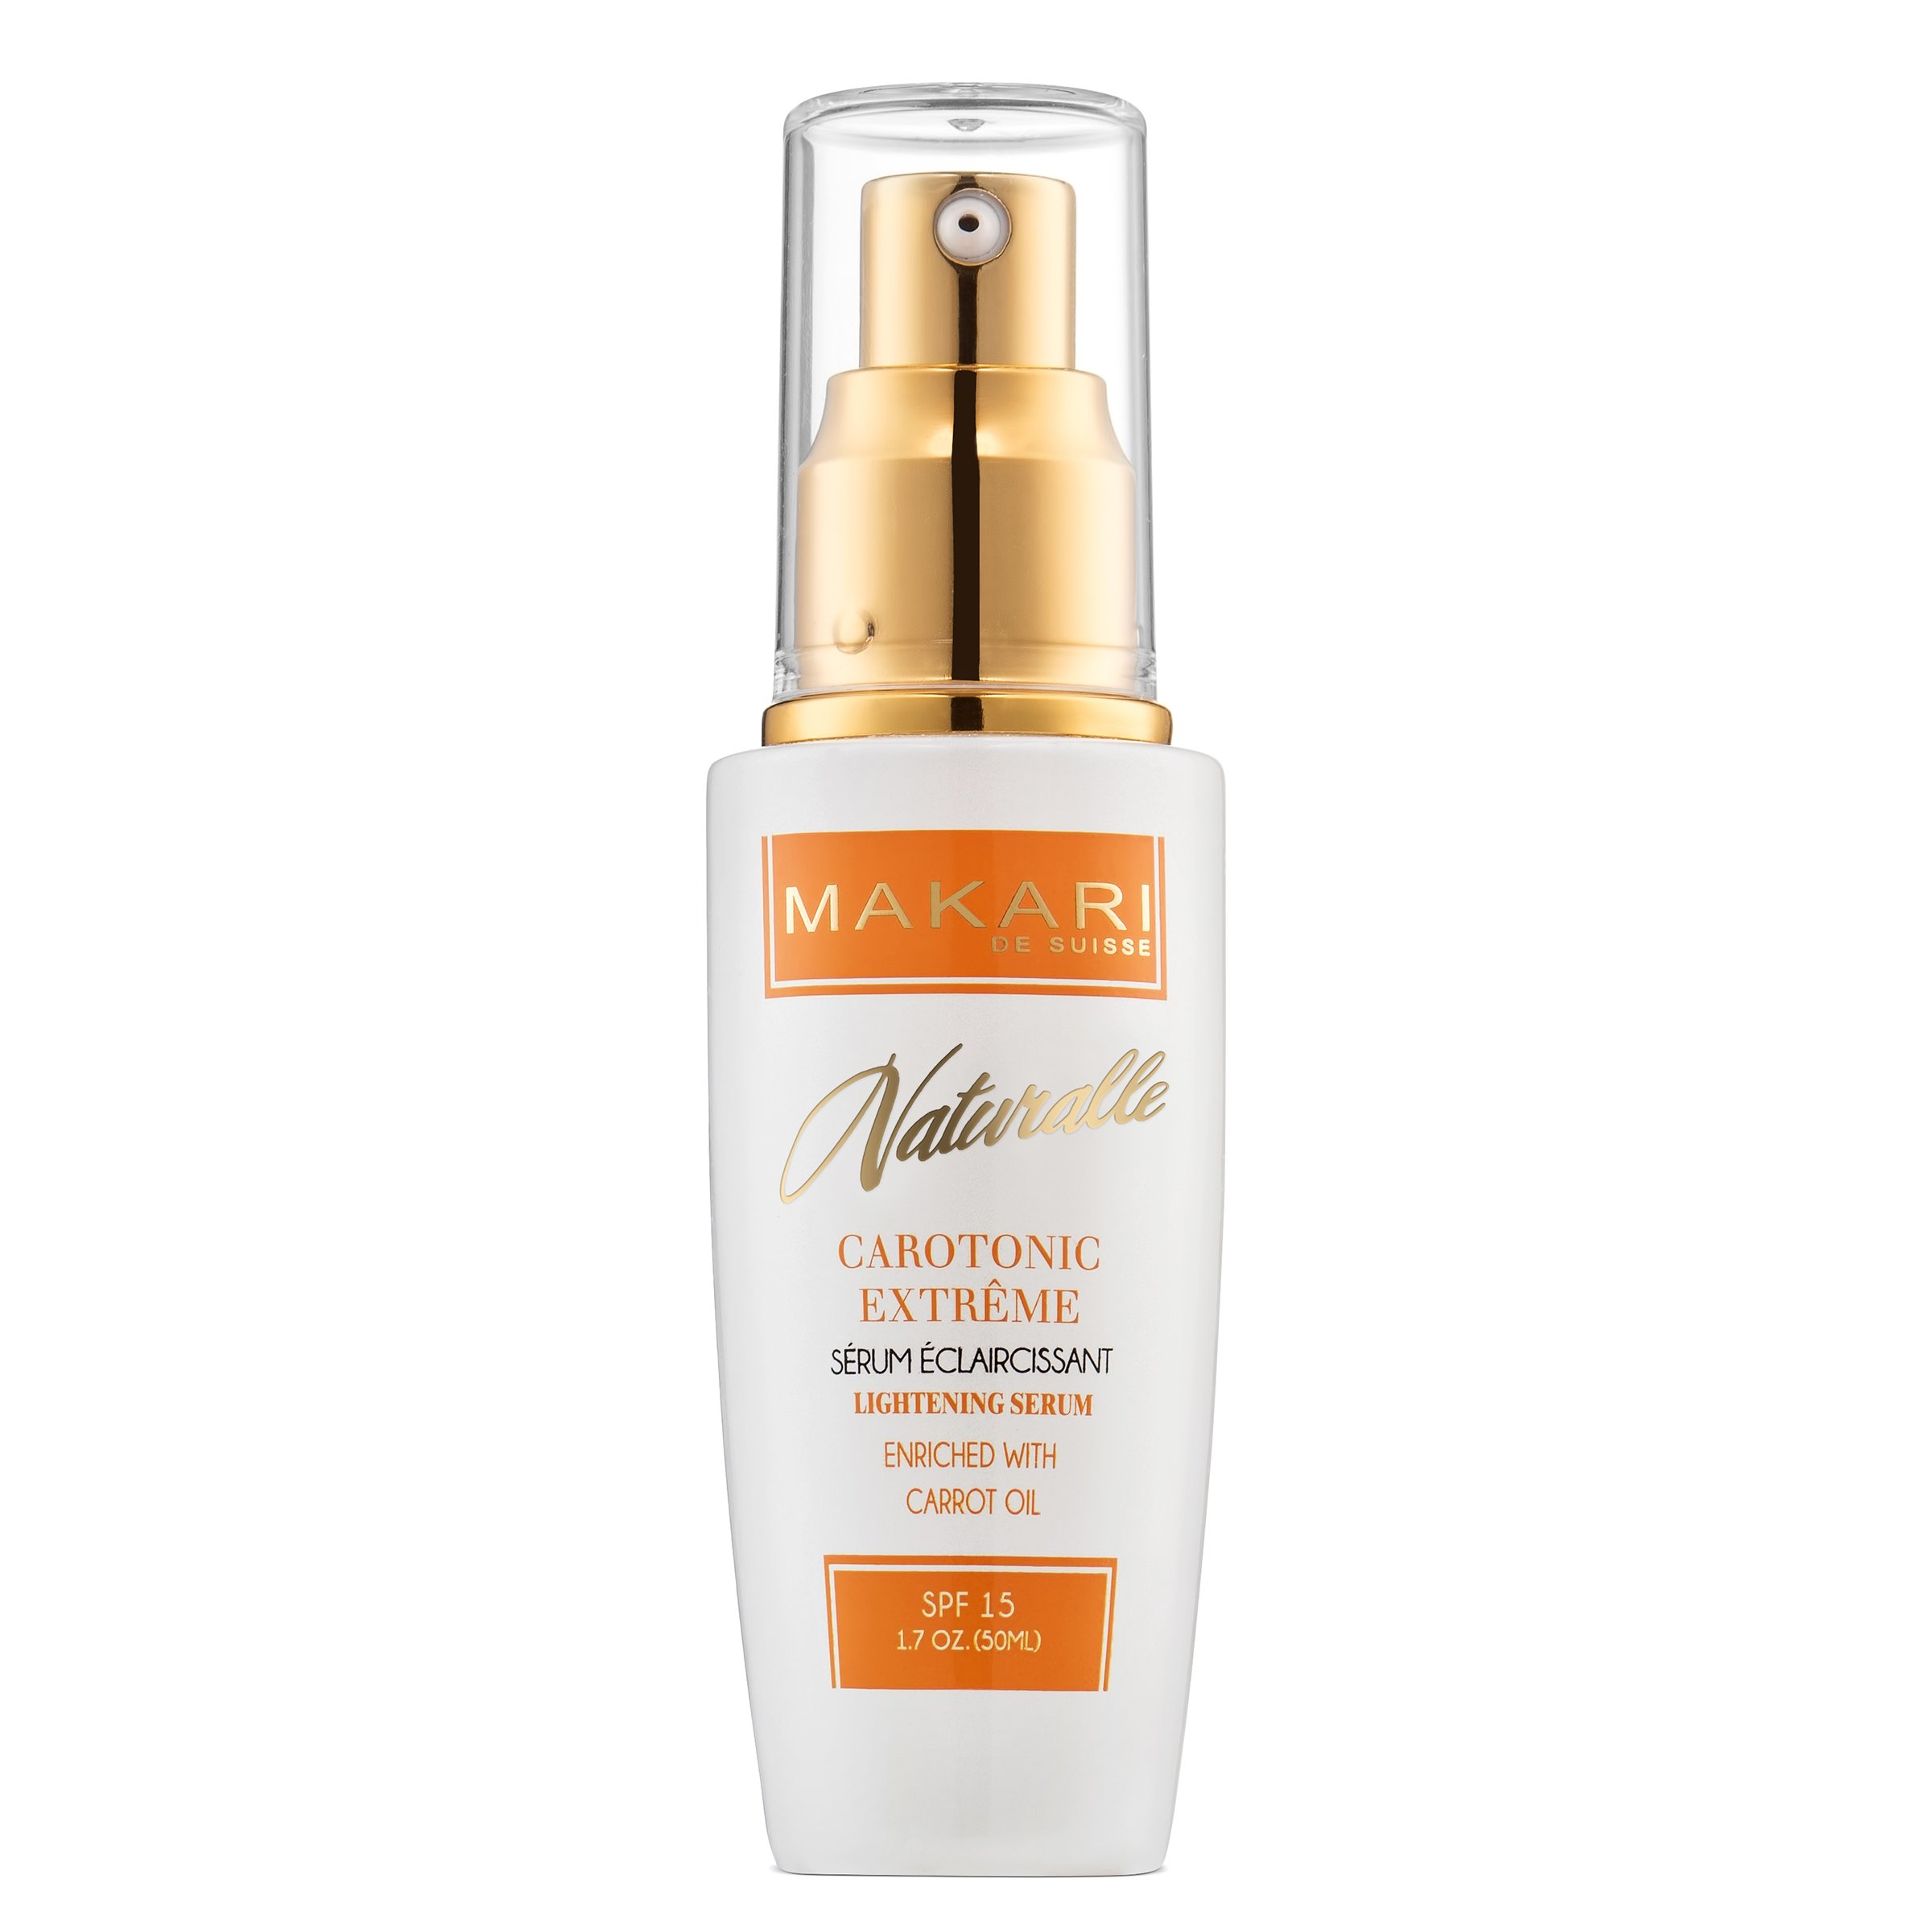 Makari Naturalle Carotonic Extreme Skin Lightening Serum 1.7oz - Toning & Brightening Face Serum with Carrot Oil & SPF 15 - Anti-Aging Whitening Treatment for Acne Scars, Dark Spots & Wrinkles by MAKARI